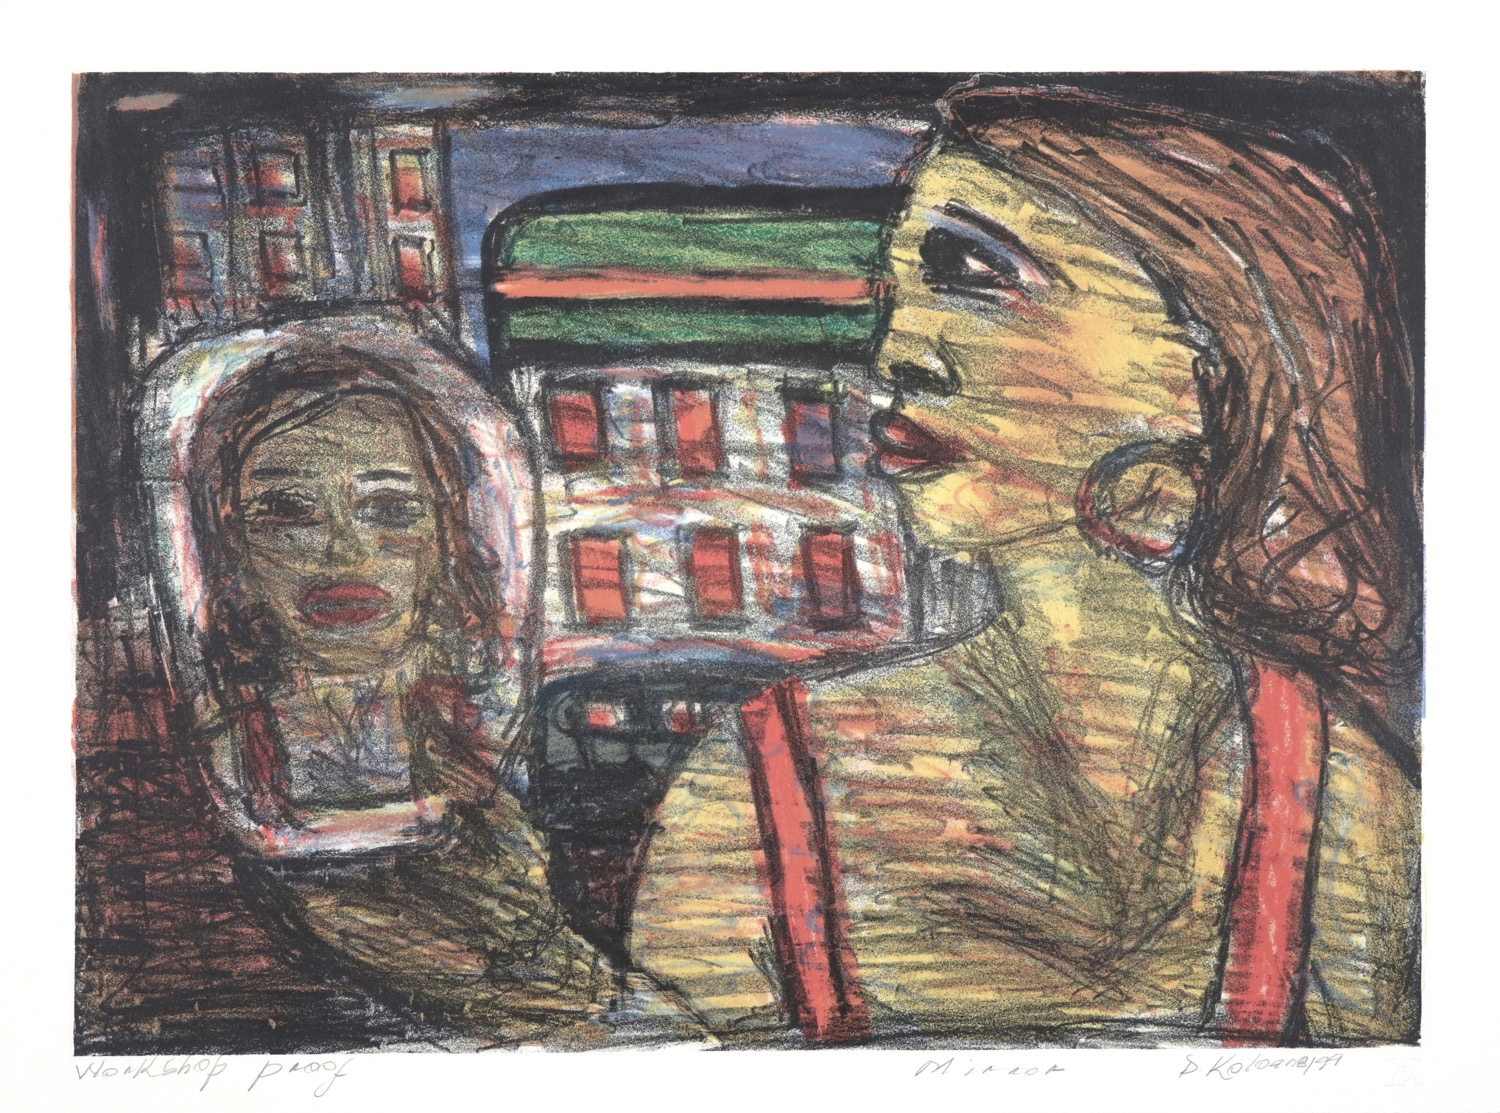 Woman in profile looking at her face in mirror with cityscape backdrop